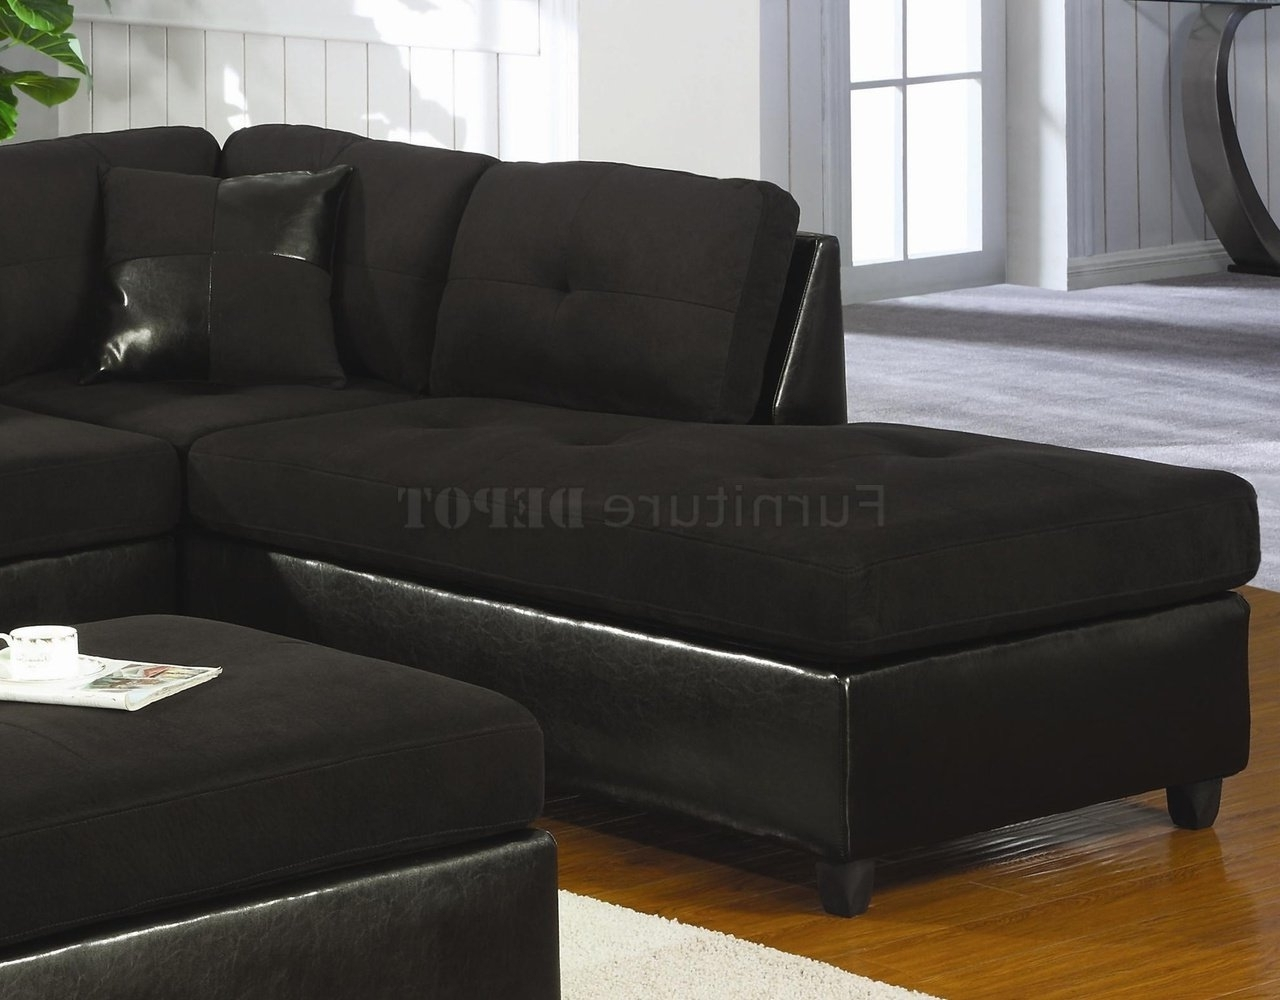 Best And Newest Faux Suede Sofas In Black Microsuede Couch (View 14 of 15)